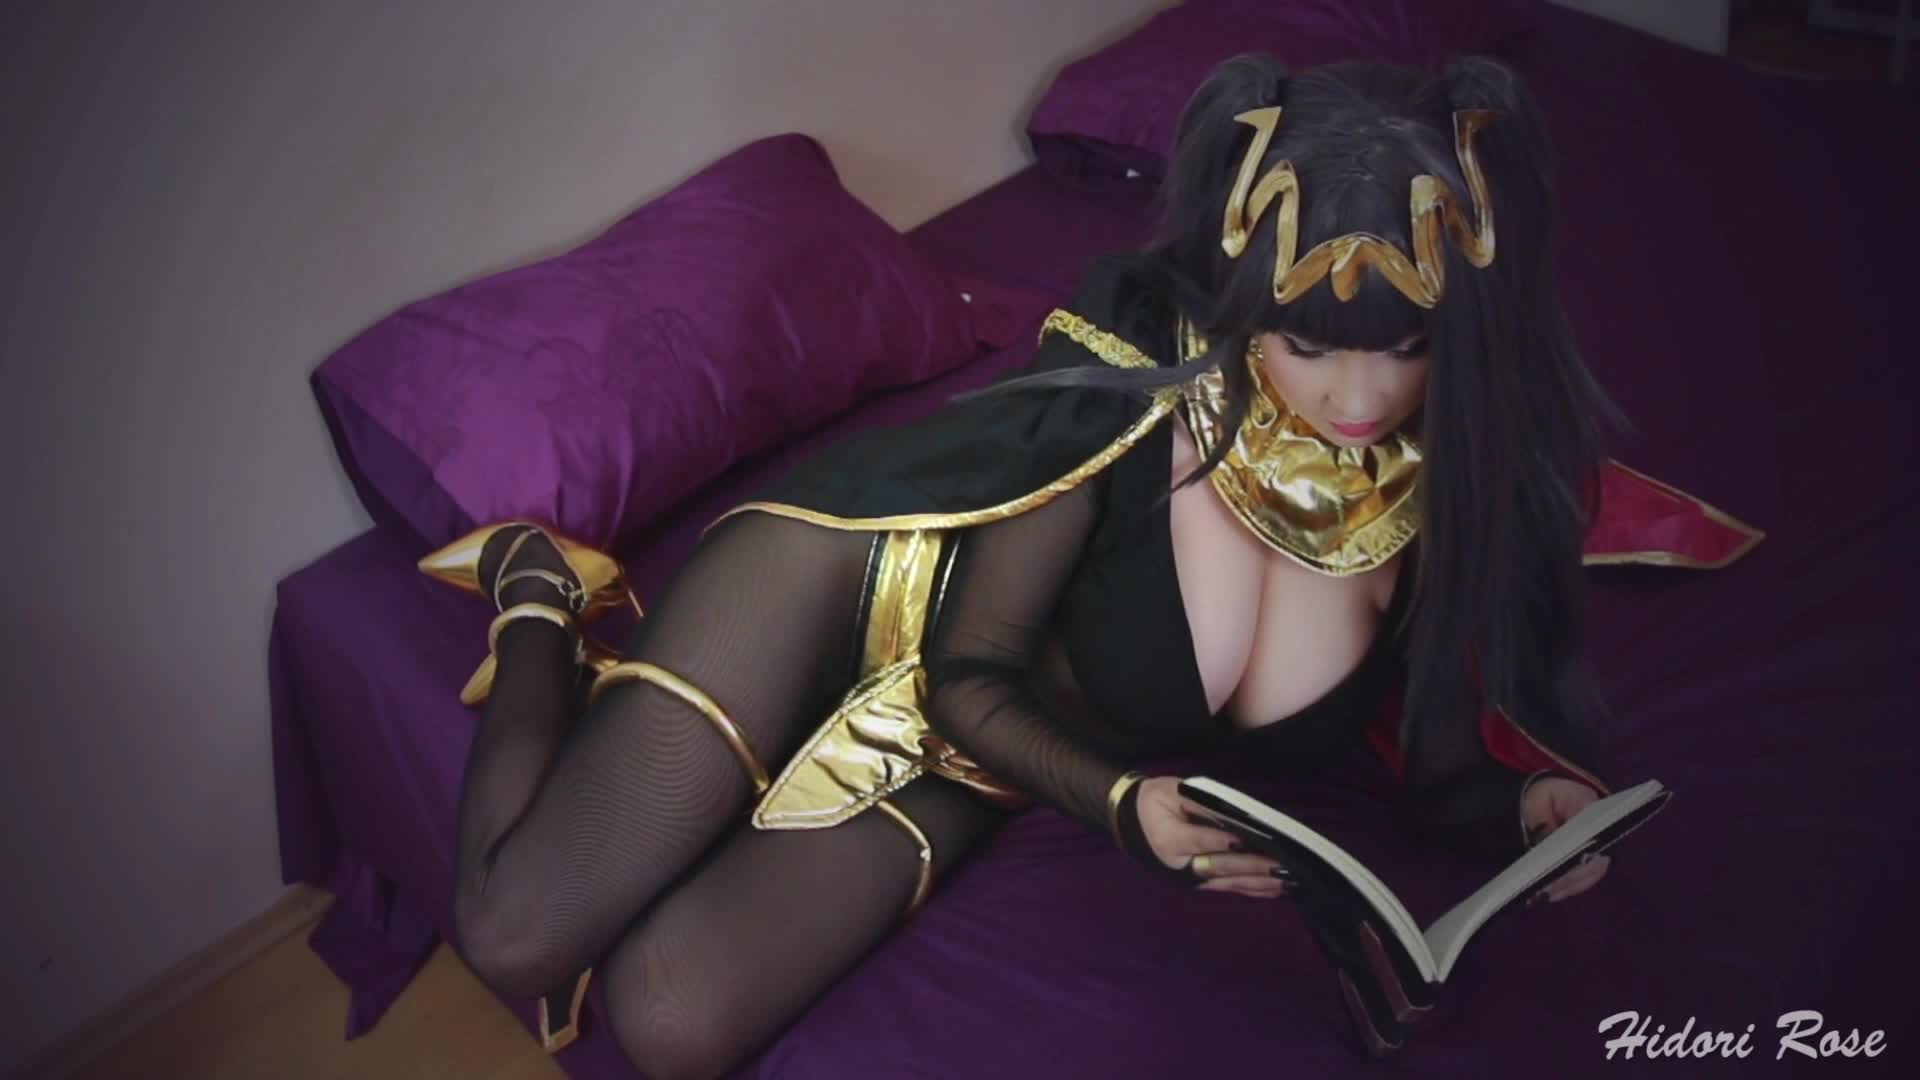 Tharja from Fire Emblem and the dragon cock